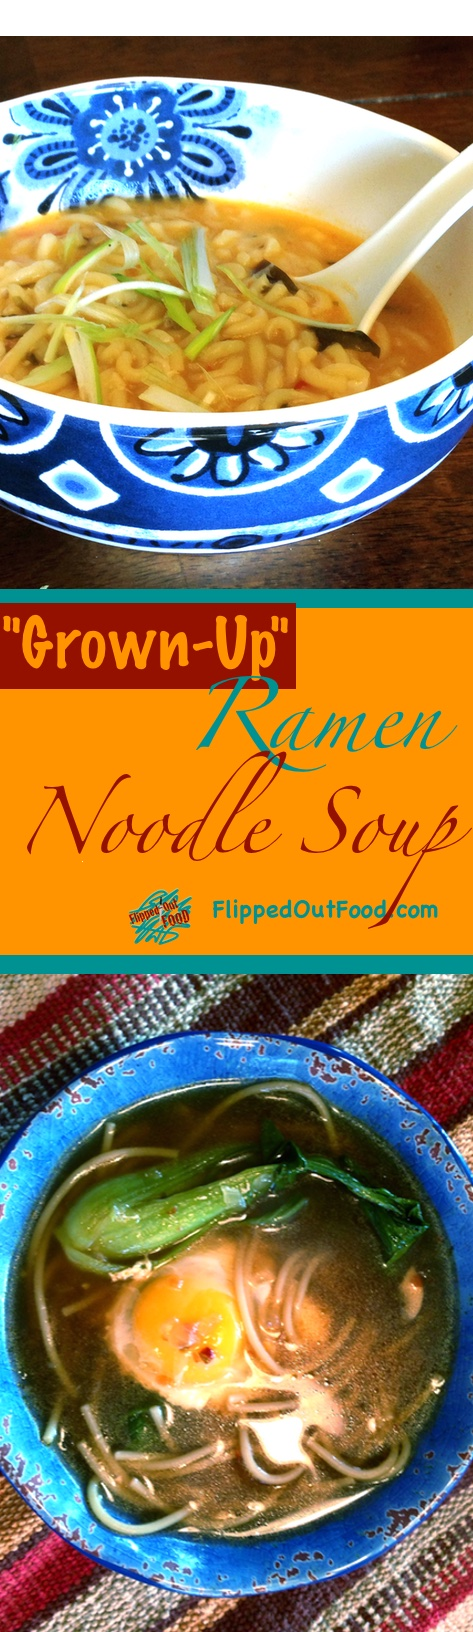 An easy recipe for Asian Ramen Noodle Soup that's much healthier than the nuke-and-eat version we all grew up with!